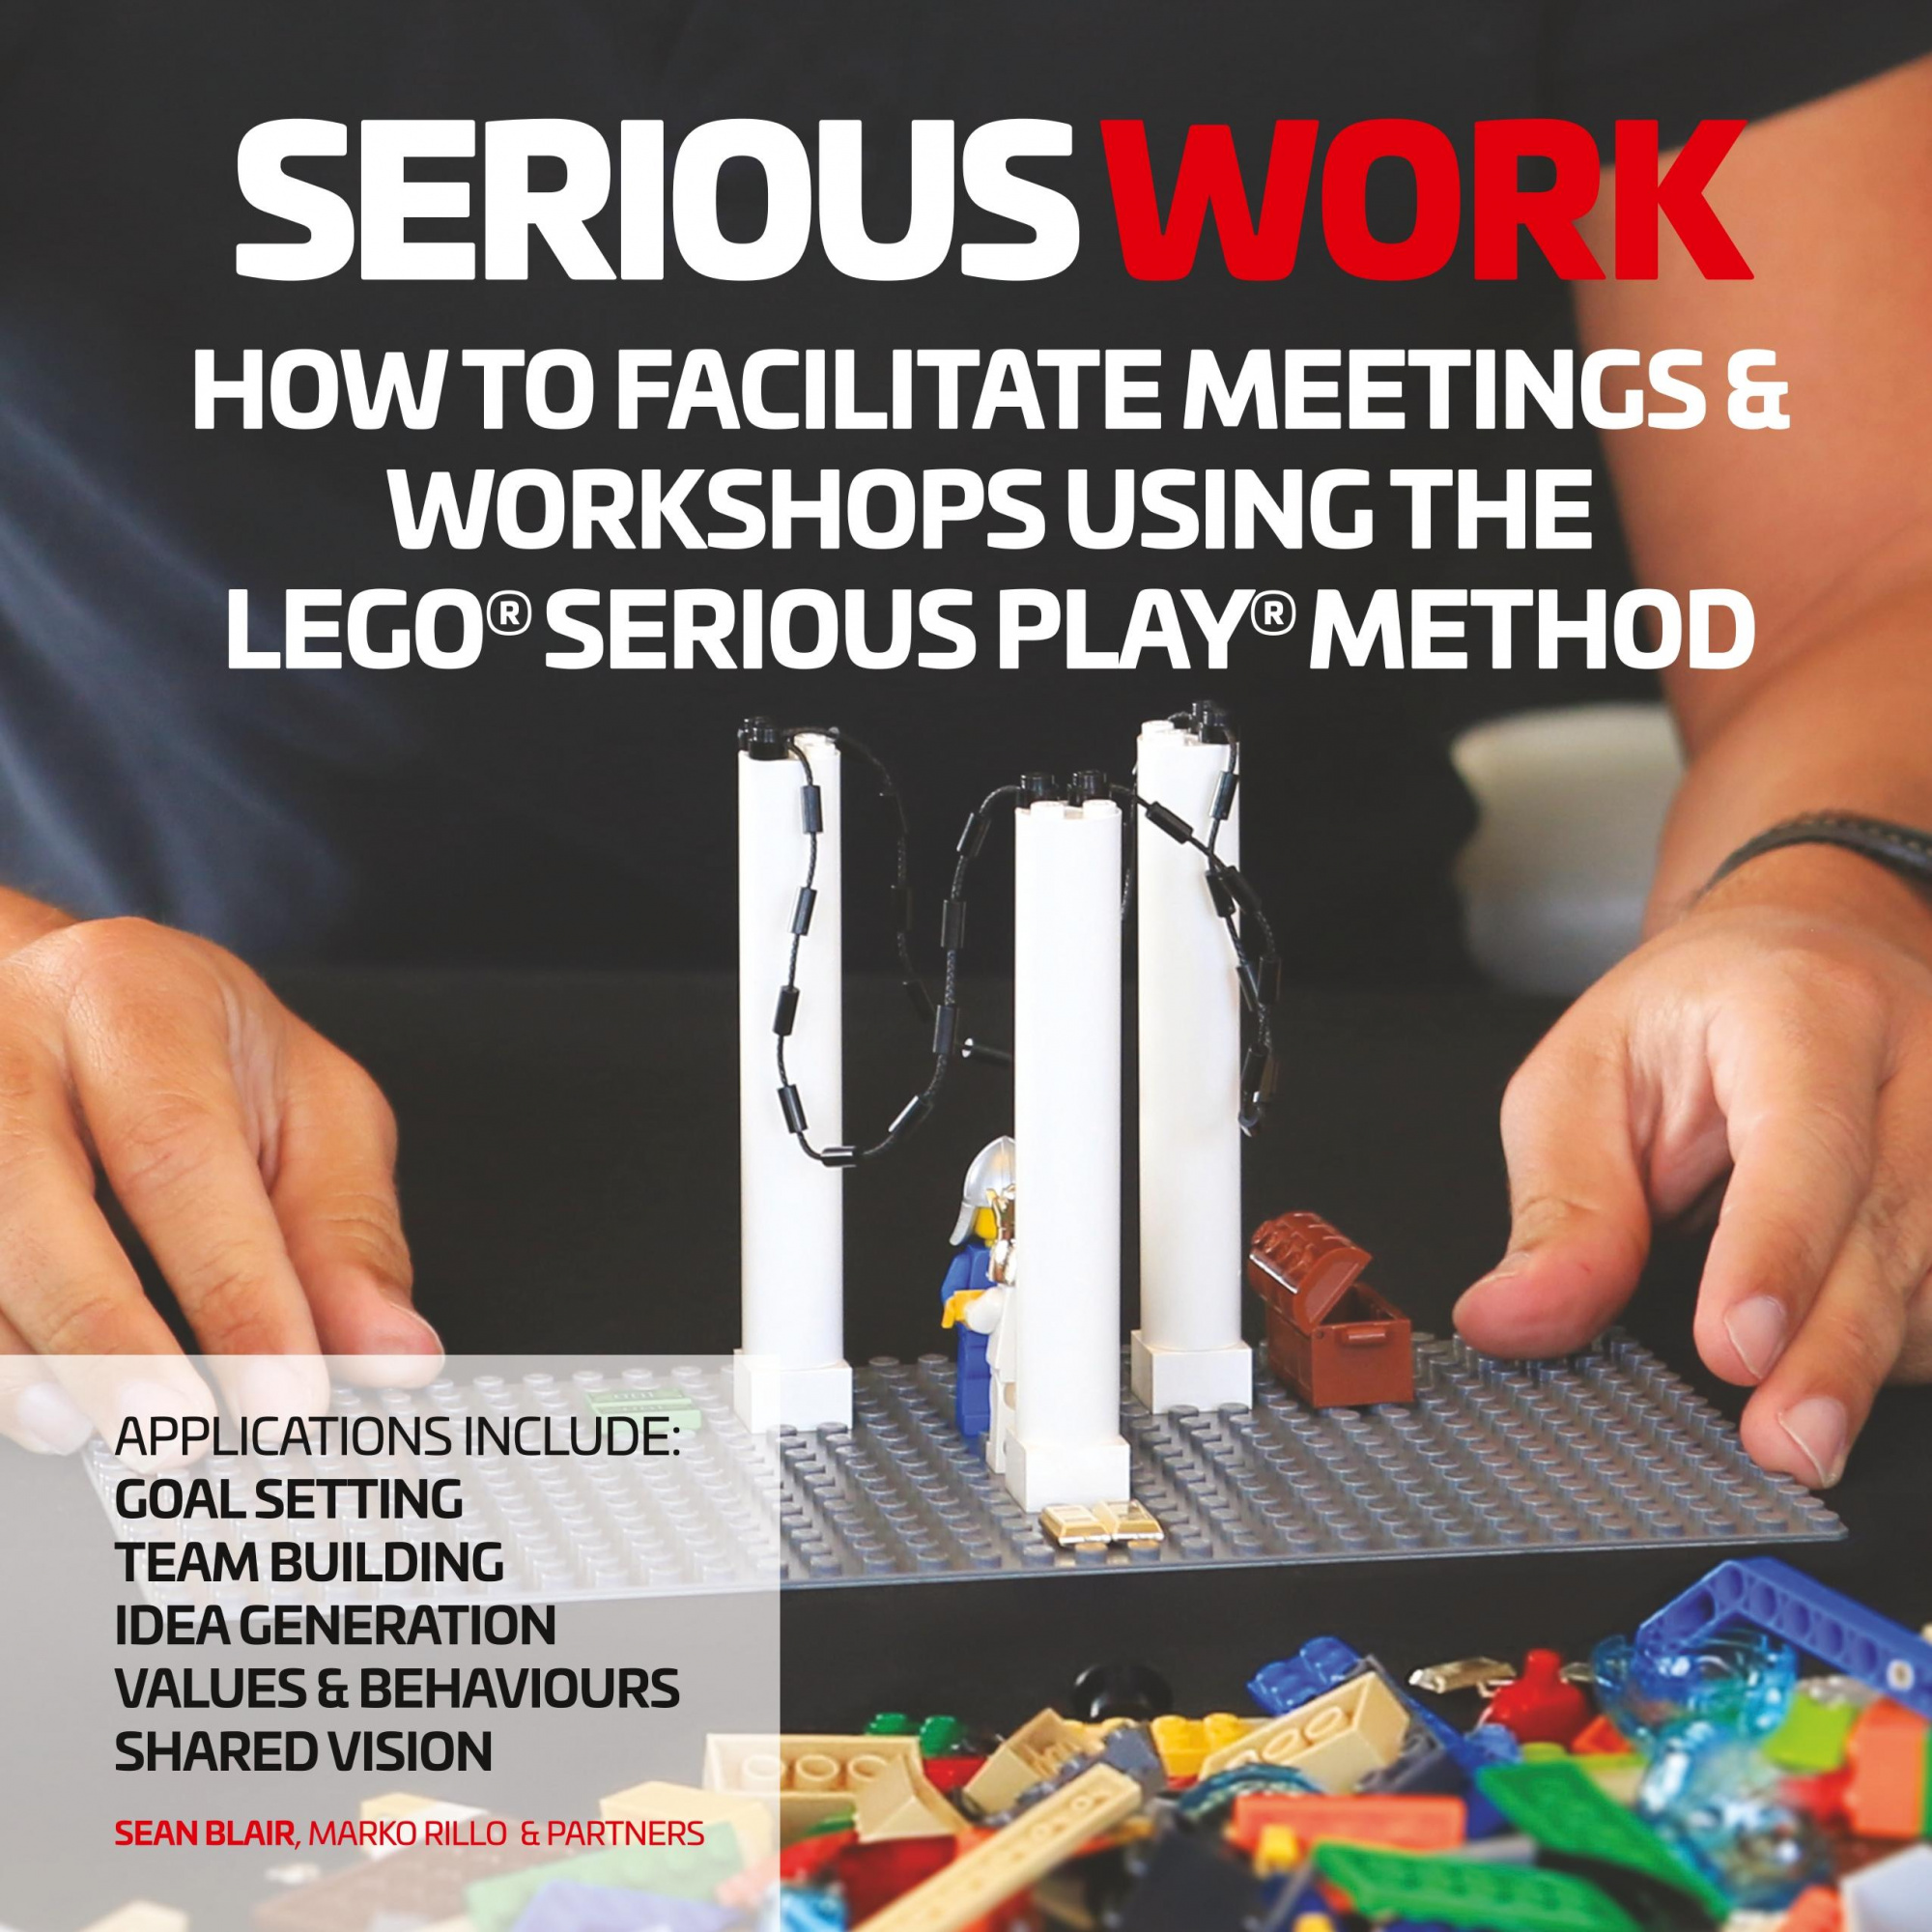 Serious Work: How to Facilitate LEGO® Serious Play® Meetings and Workshops